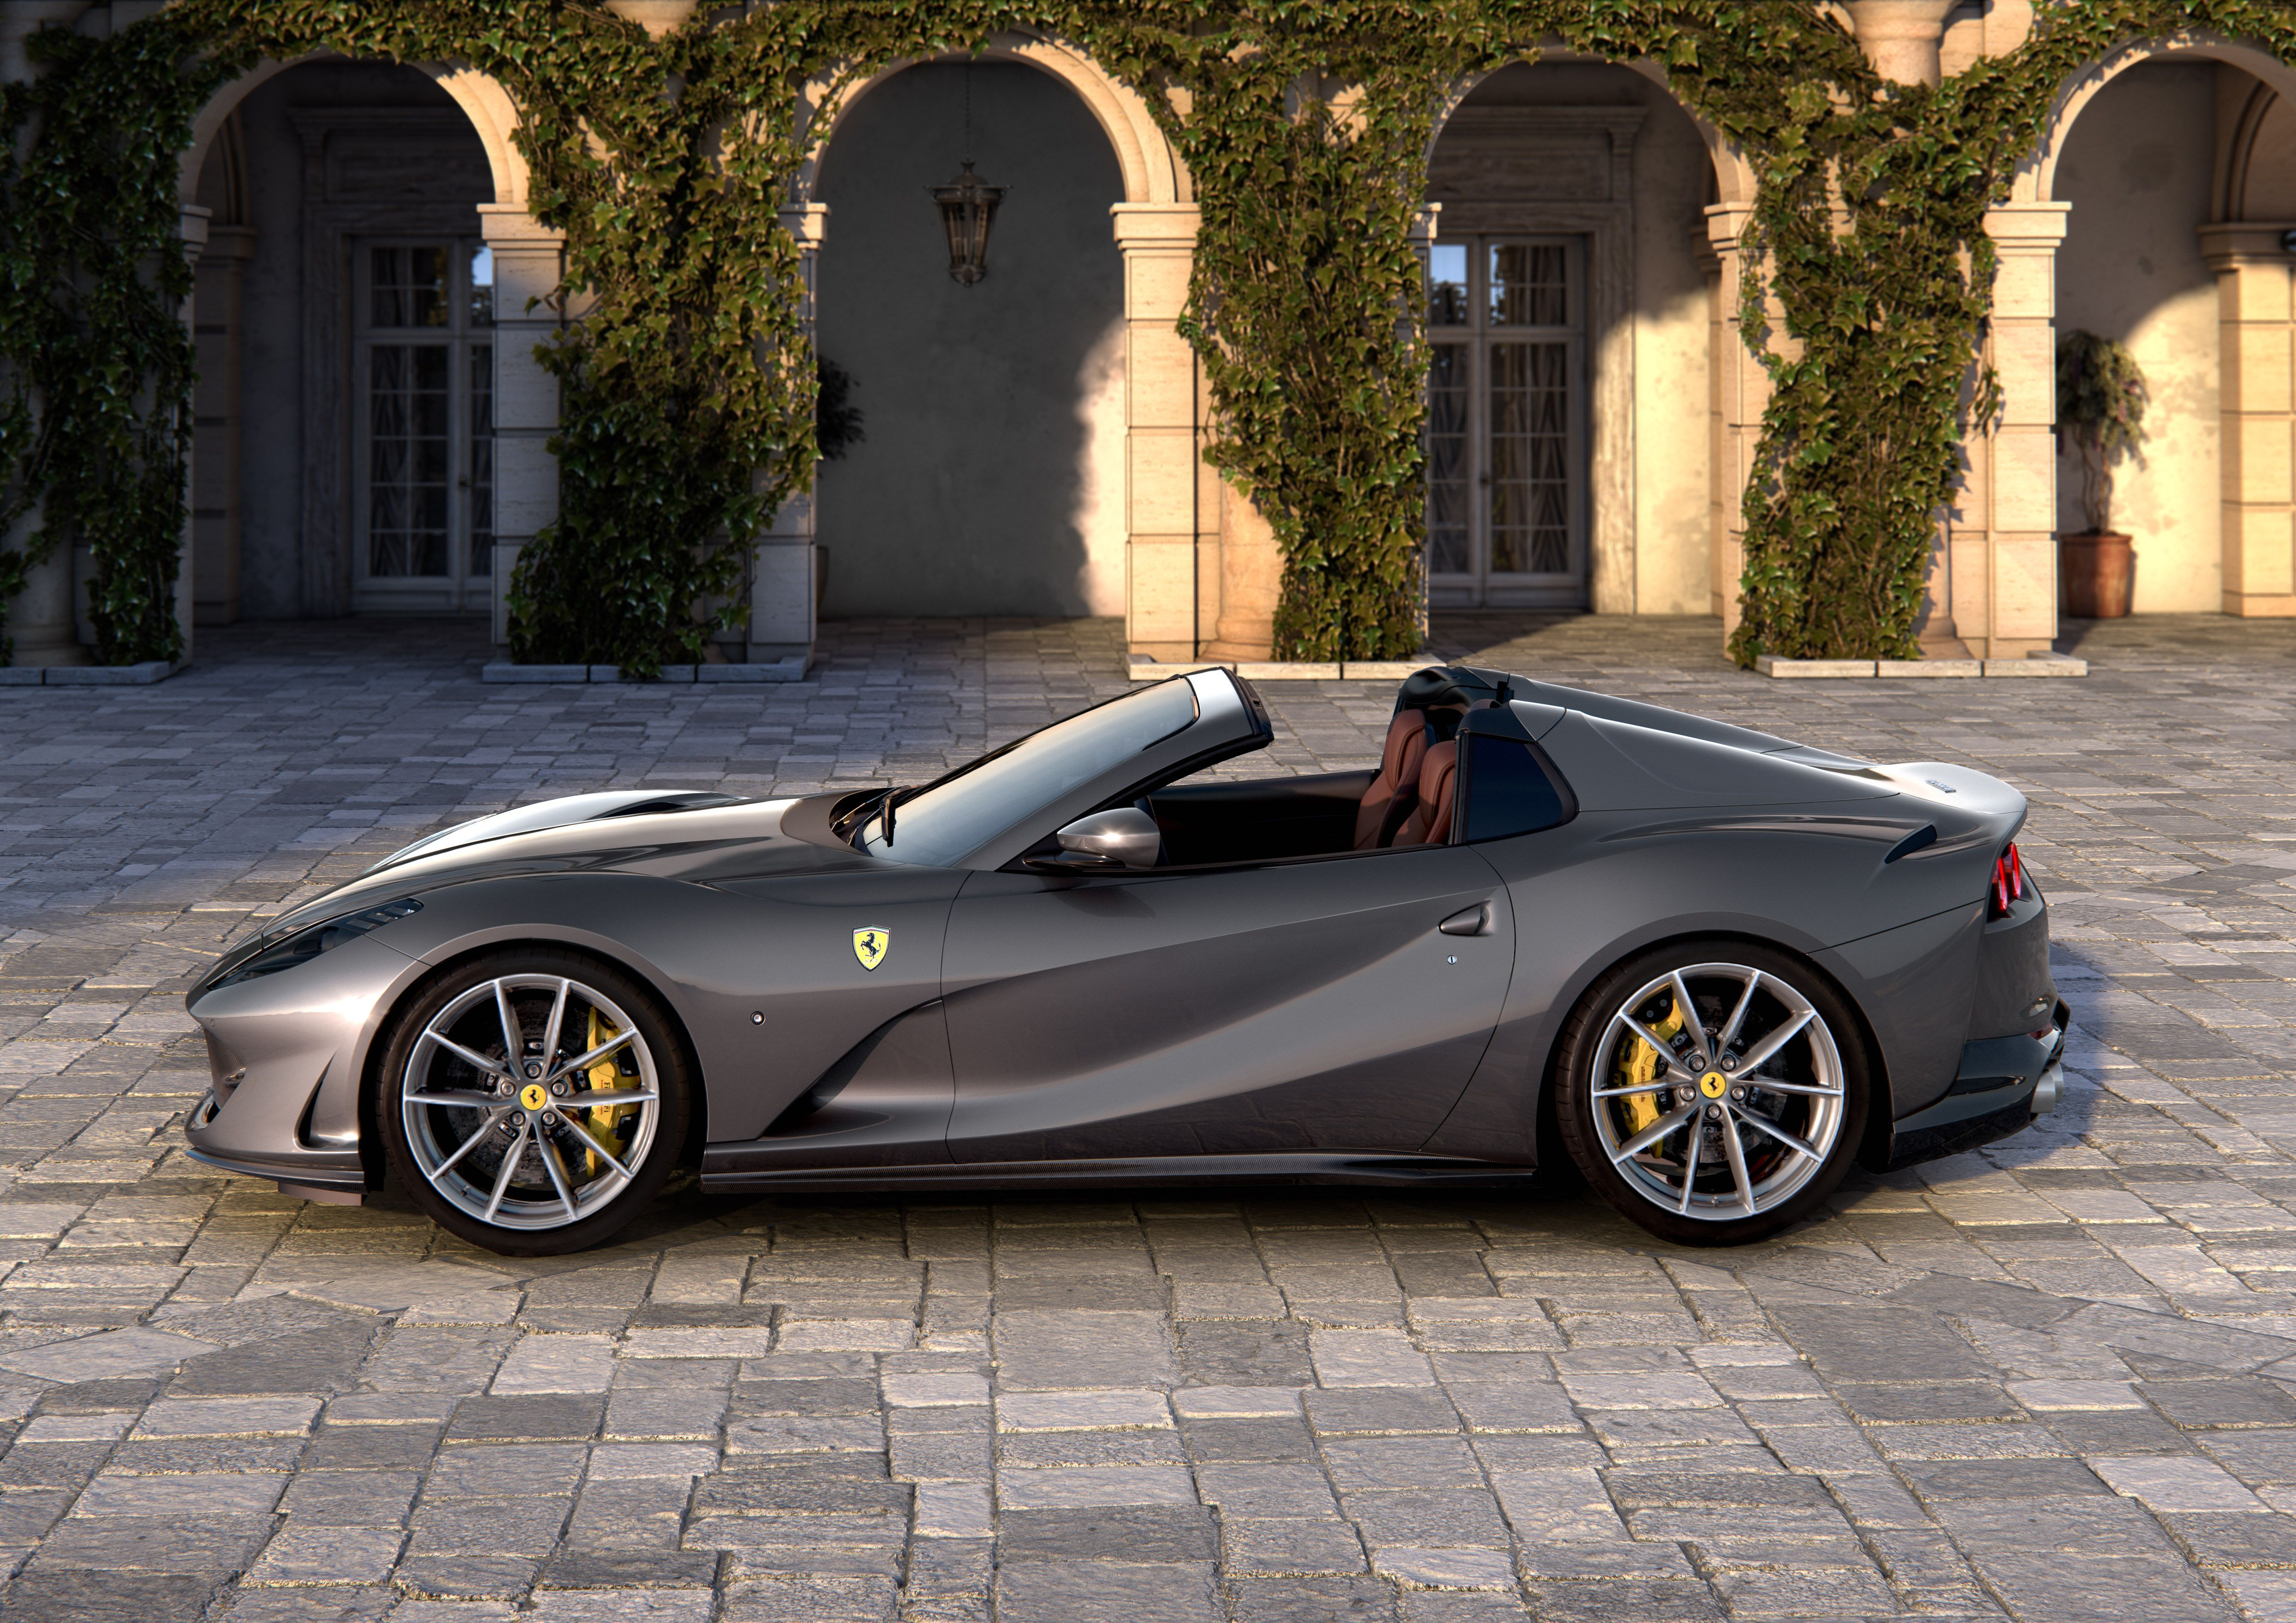 Ferrari 812 Gts Official Factory Issued Press Photo 2019